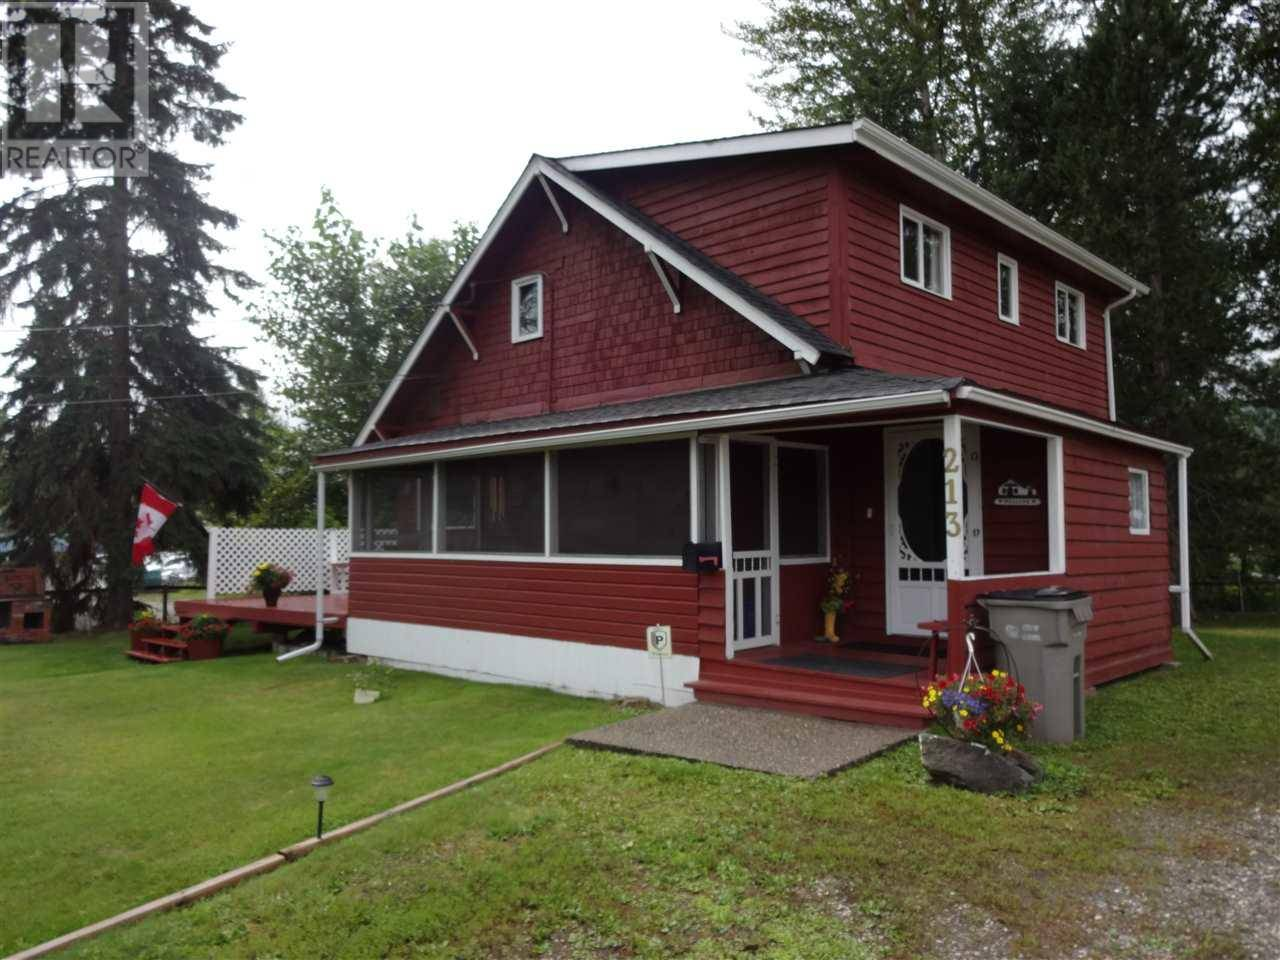 House for sale at 213 Baker Dr Quesnel British Columbia - MLS: R2367016